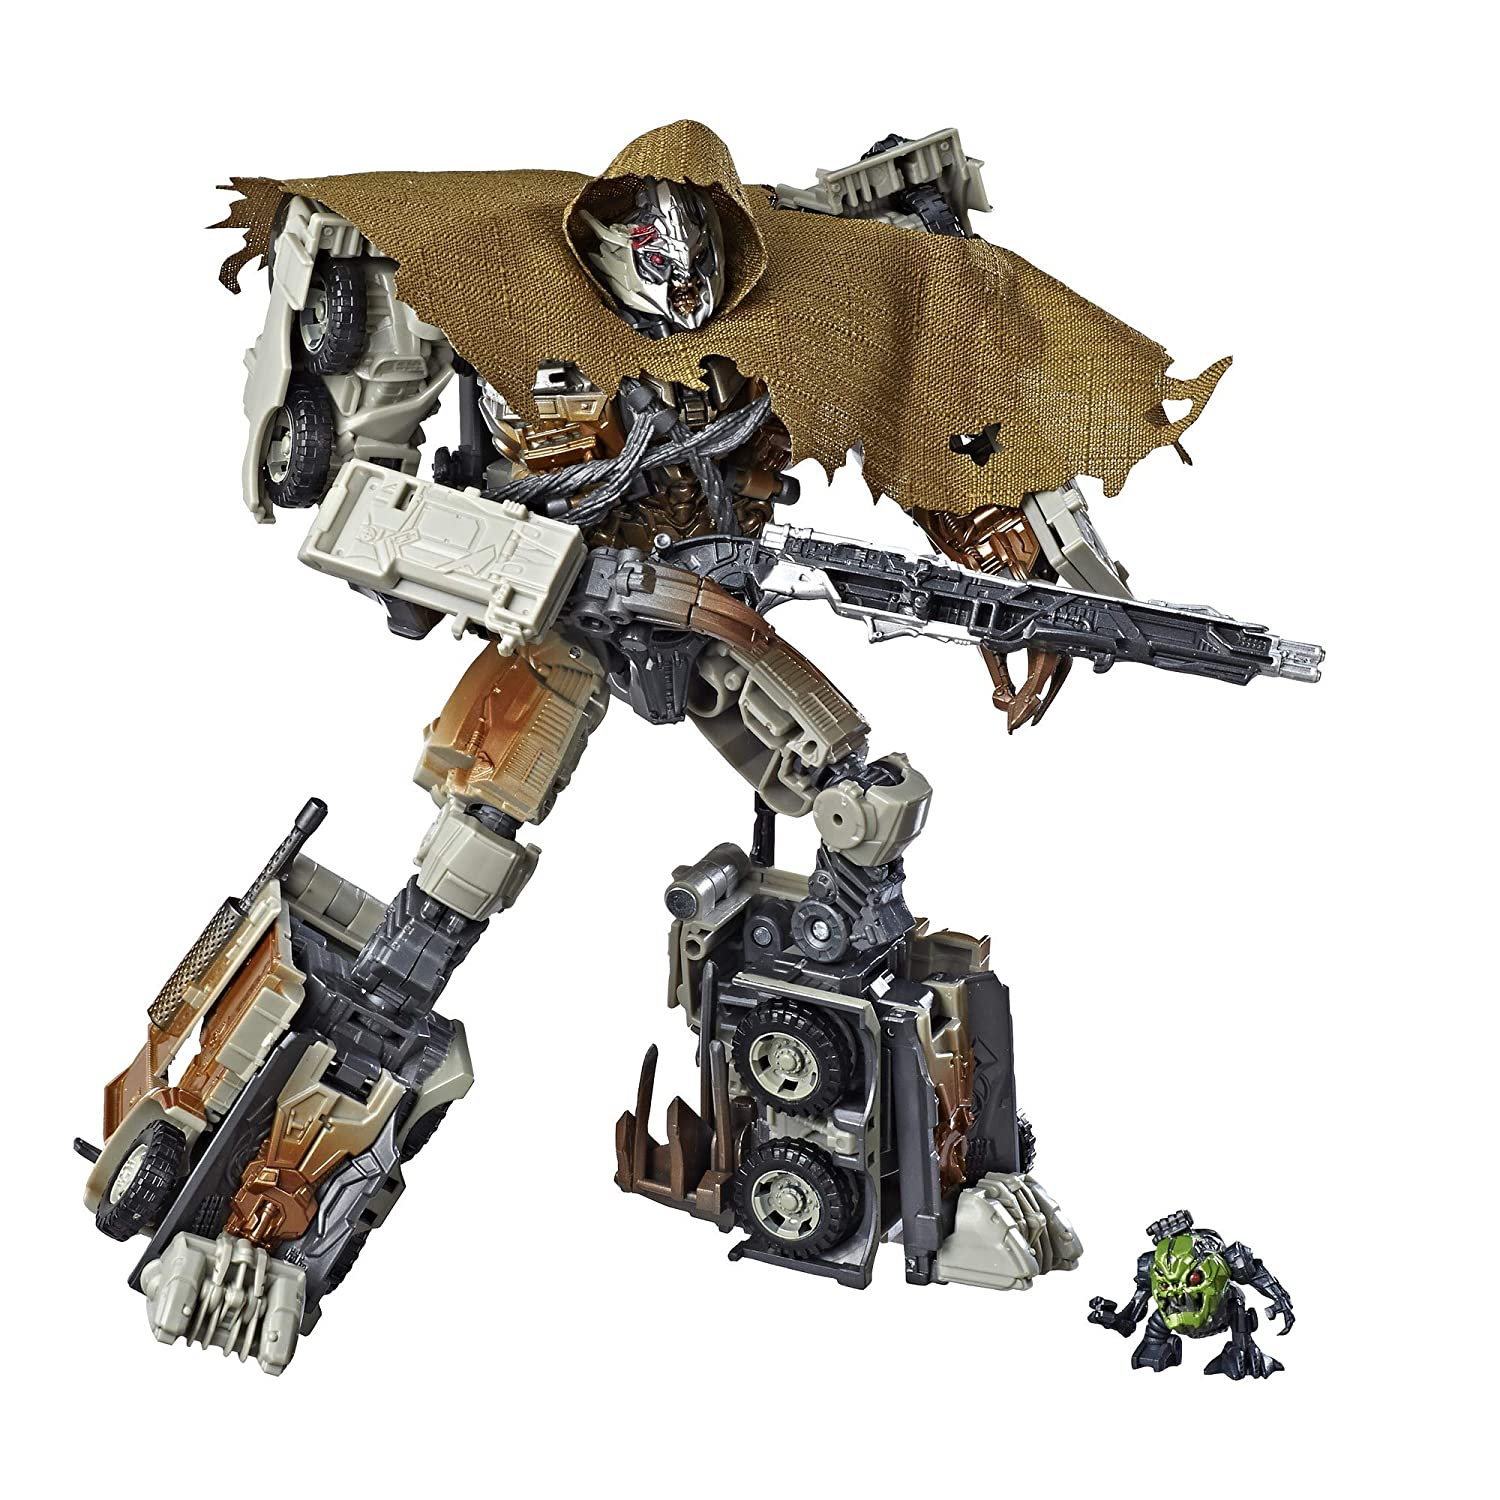 Transformers Toys Studio Series 34 Leader Class Dark of the Moon Movie  Megatron with Igor Action Figure - Kids Ages 8 and Up, 8 5-inch